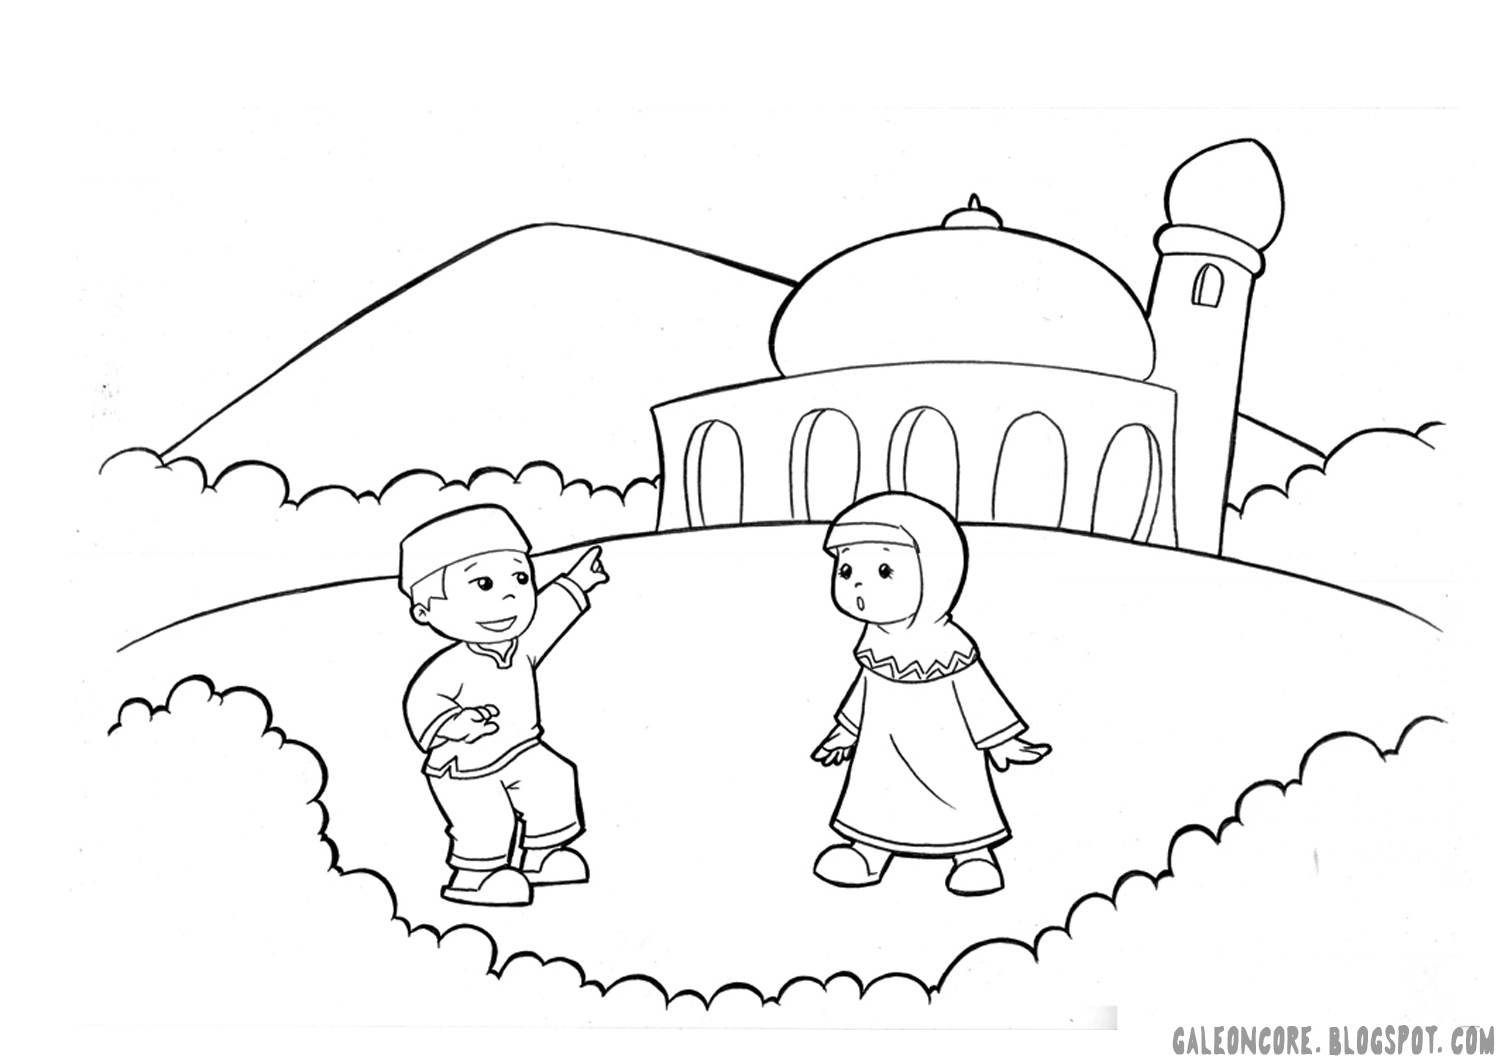 Free coloring pages of muslim cartoon